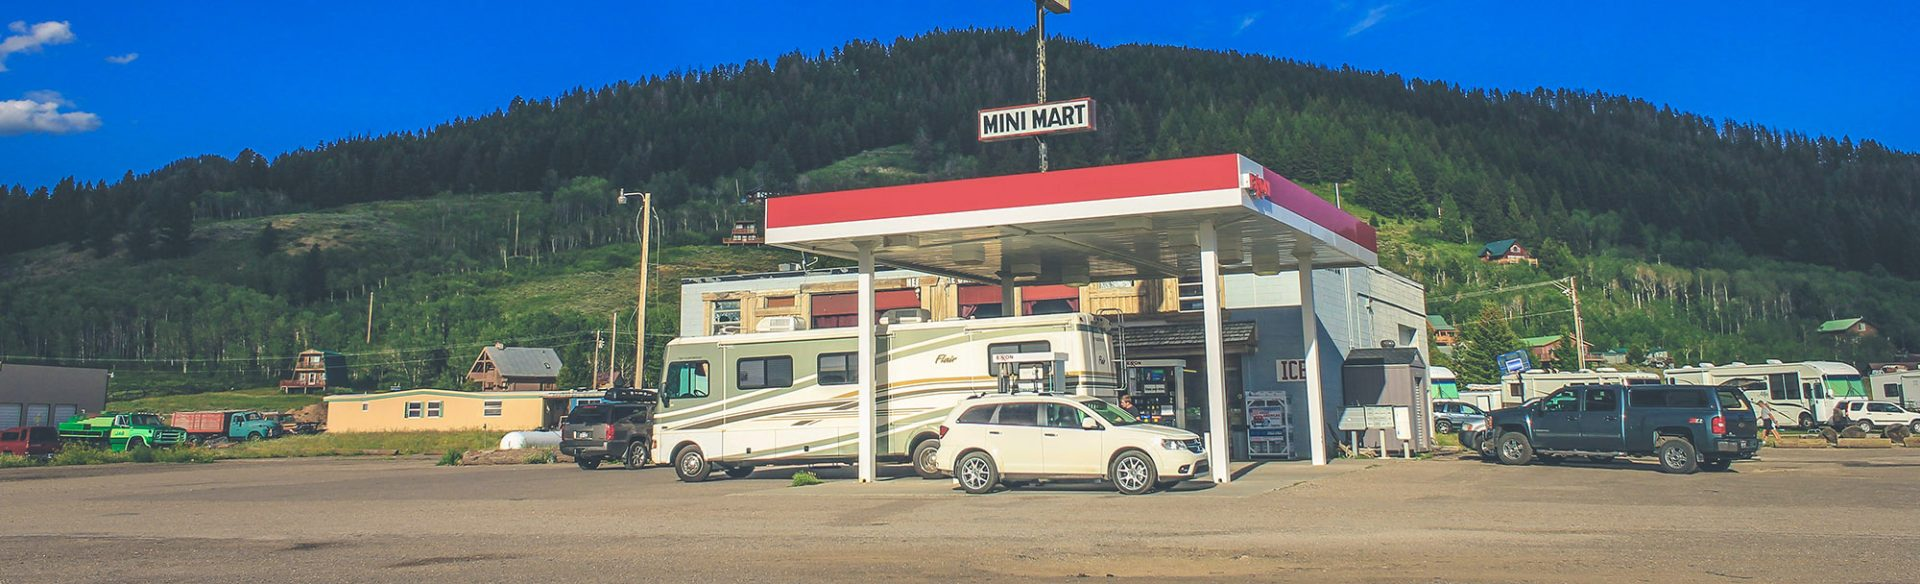 gas station and mountain